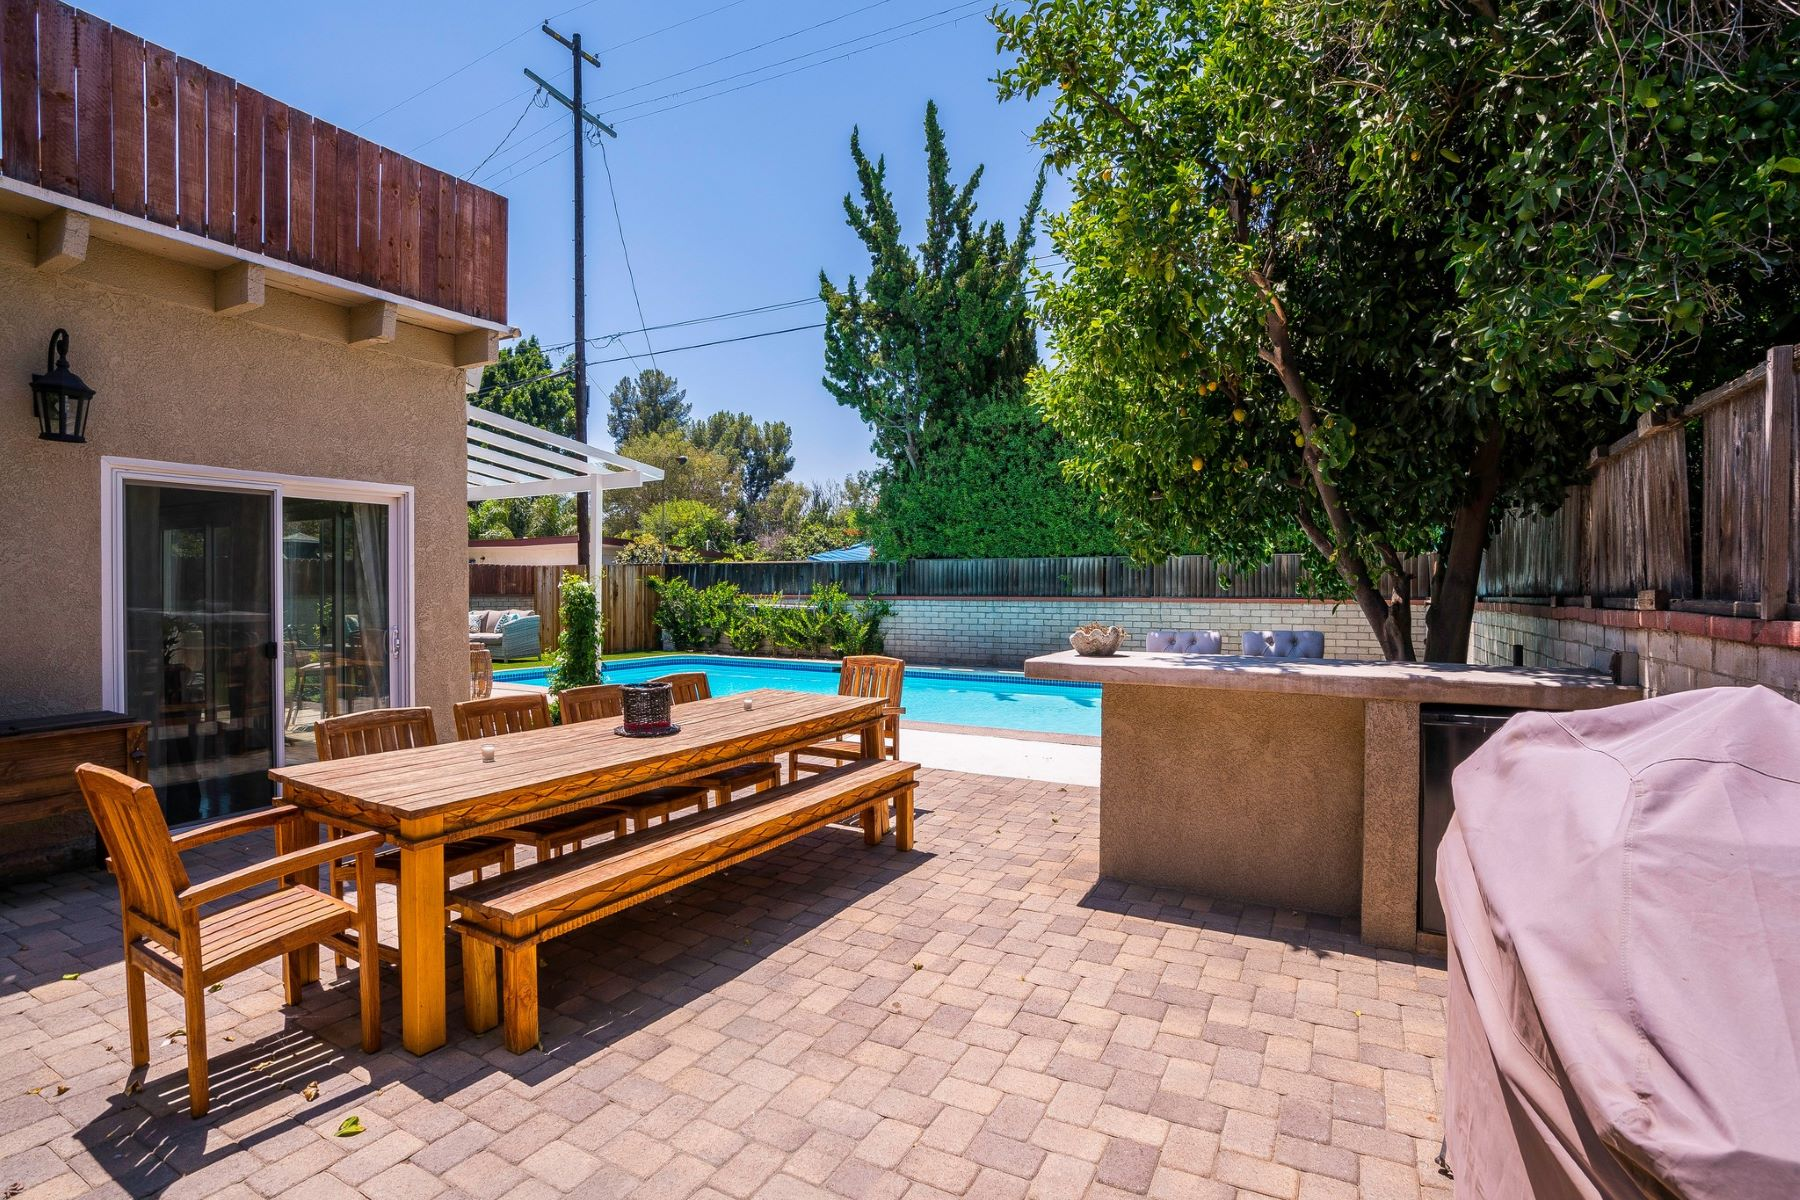 Additional photo for property listing at 6713 Blucher Ave  Van Nuys, California 91406 United States